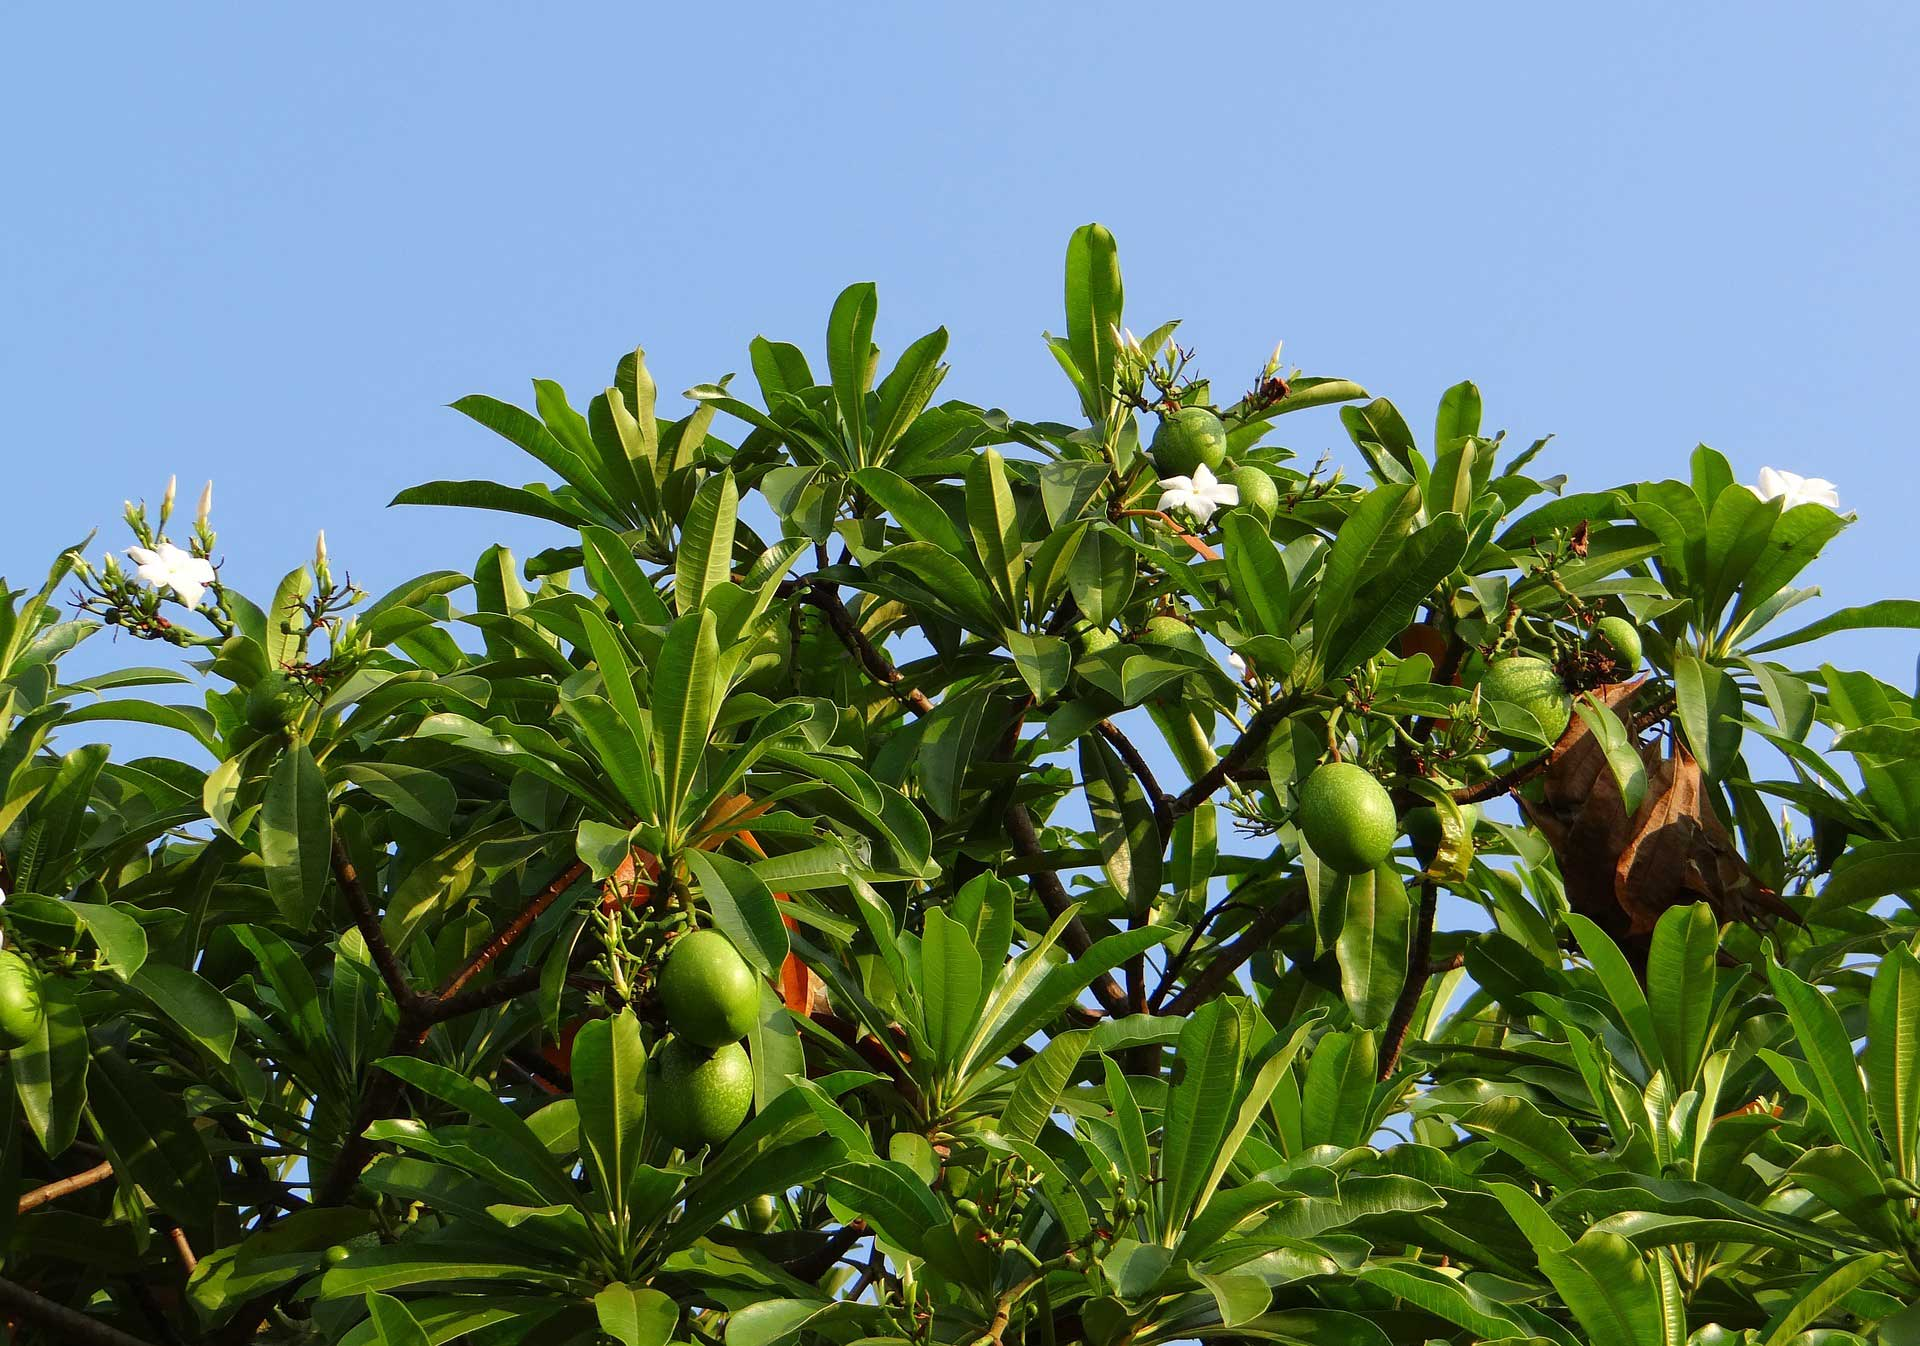 Oblong mango. Tree learn about nature